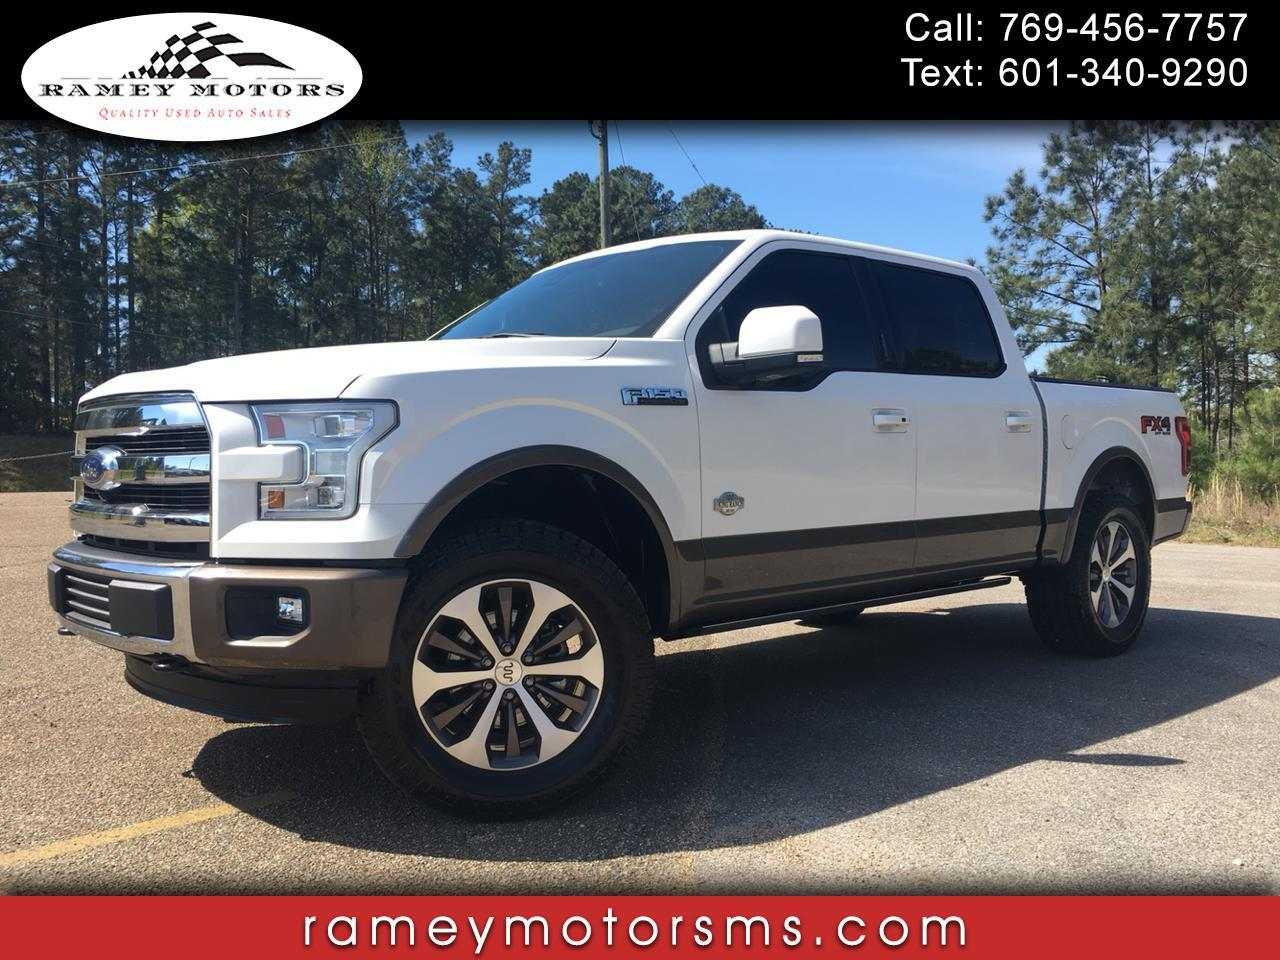 2015 Ford F-150 4WD CREWCAB CUSTOM LEVELED KING RANCH